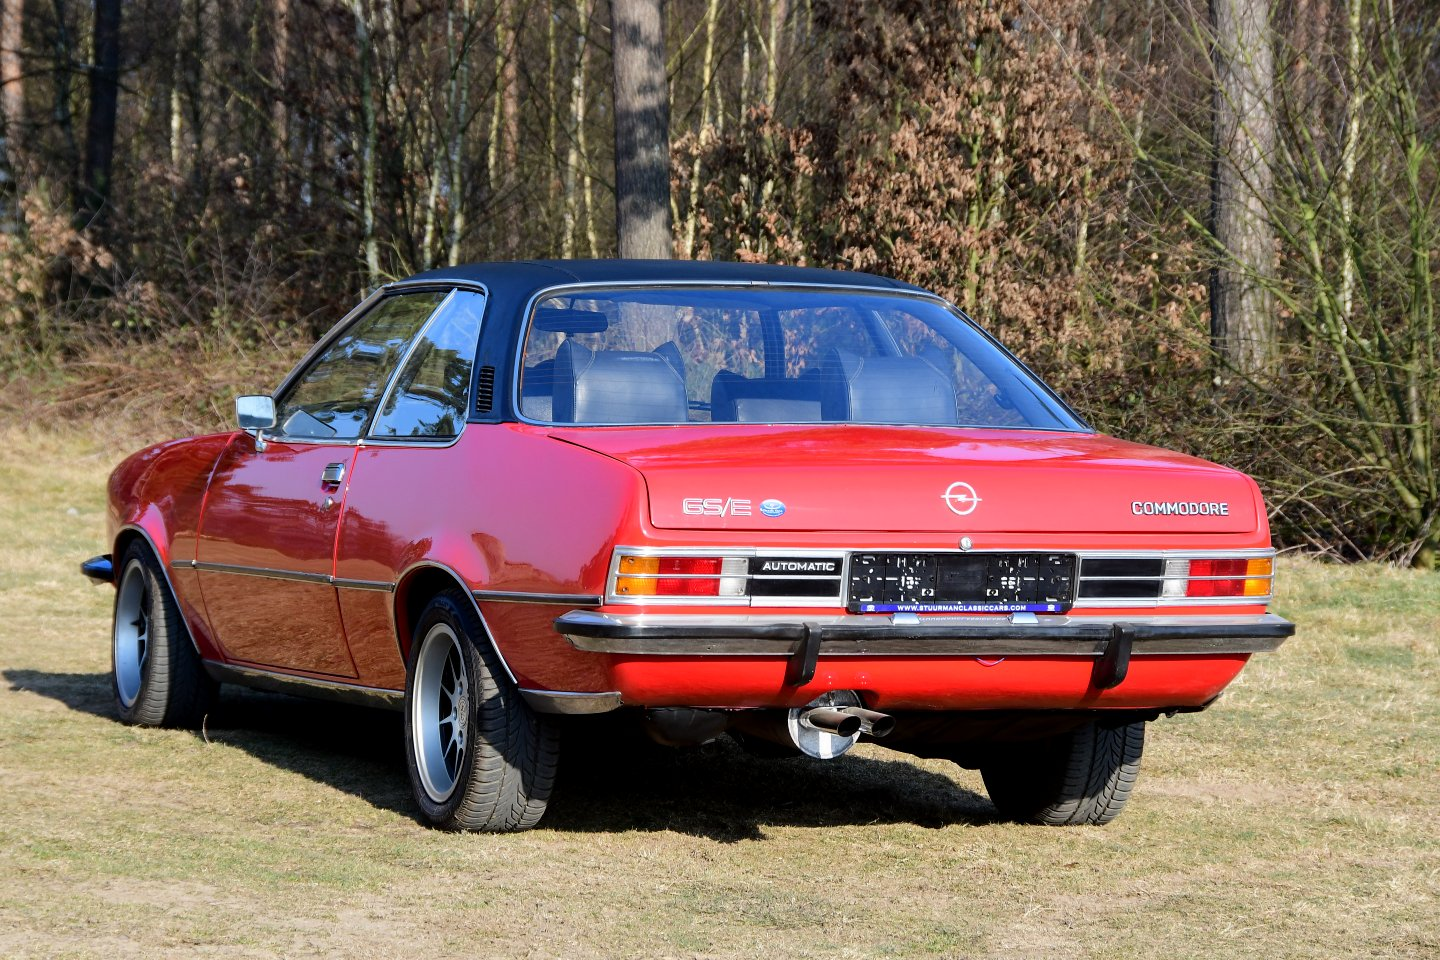 1973 Opel Commodore B 28 Gse Coupe Stuurman Classic And Special Cars Manta Interior Opel1c